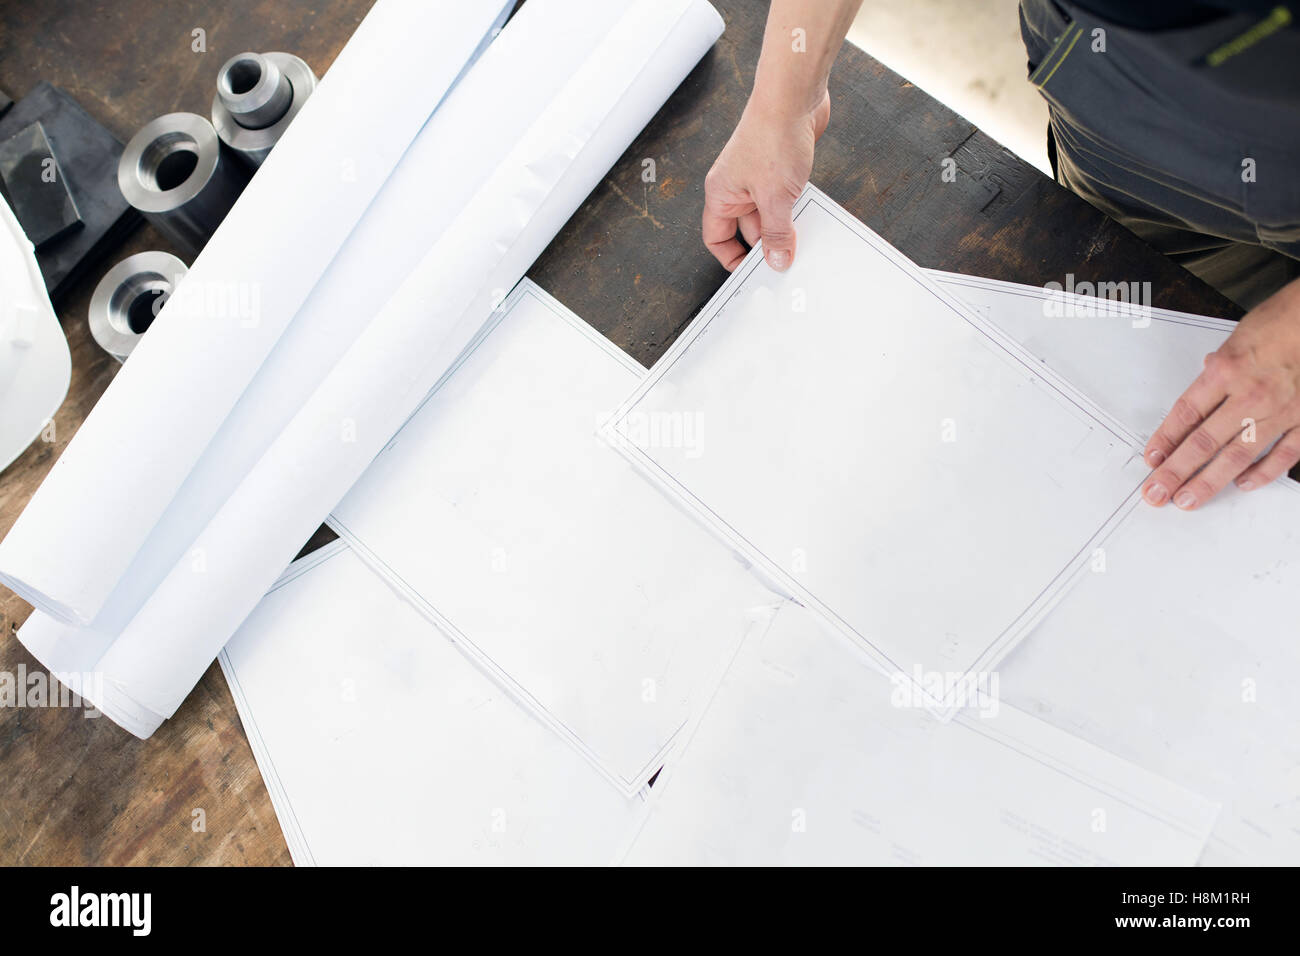 High angle view of mid adult architect with blueprints at table in industry - Stock Image